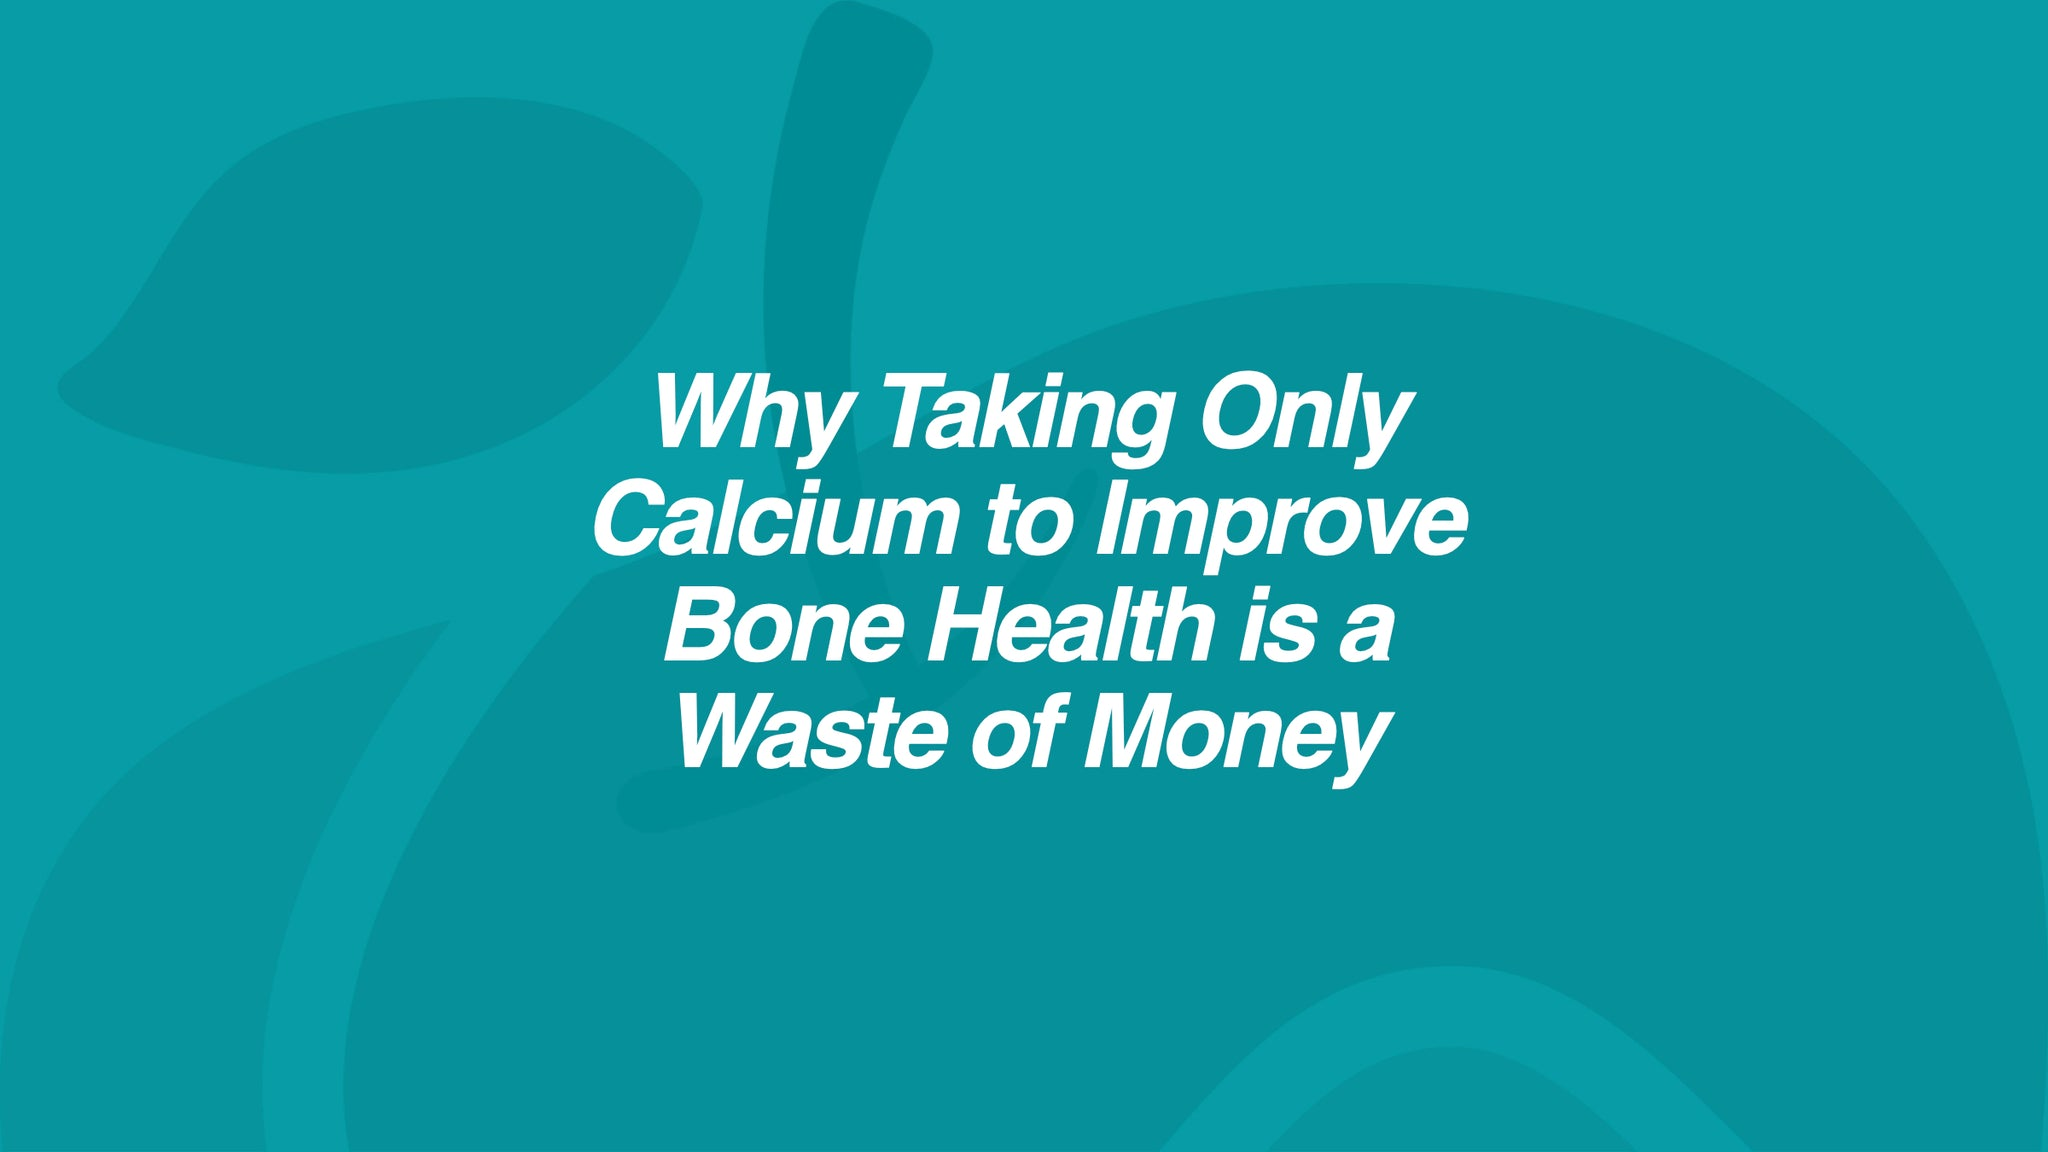 Why Taking Only Calcium to Improve Bone Health is a Waste of Money